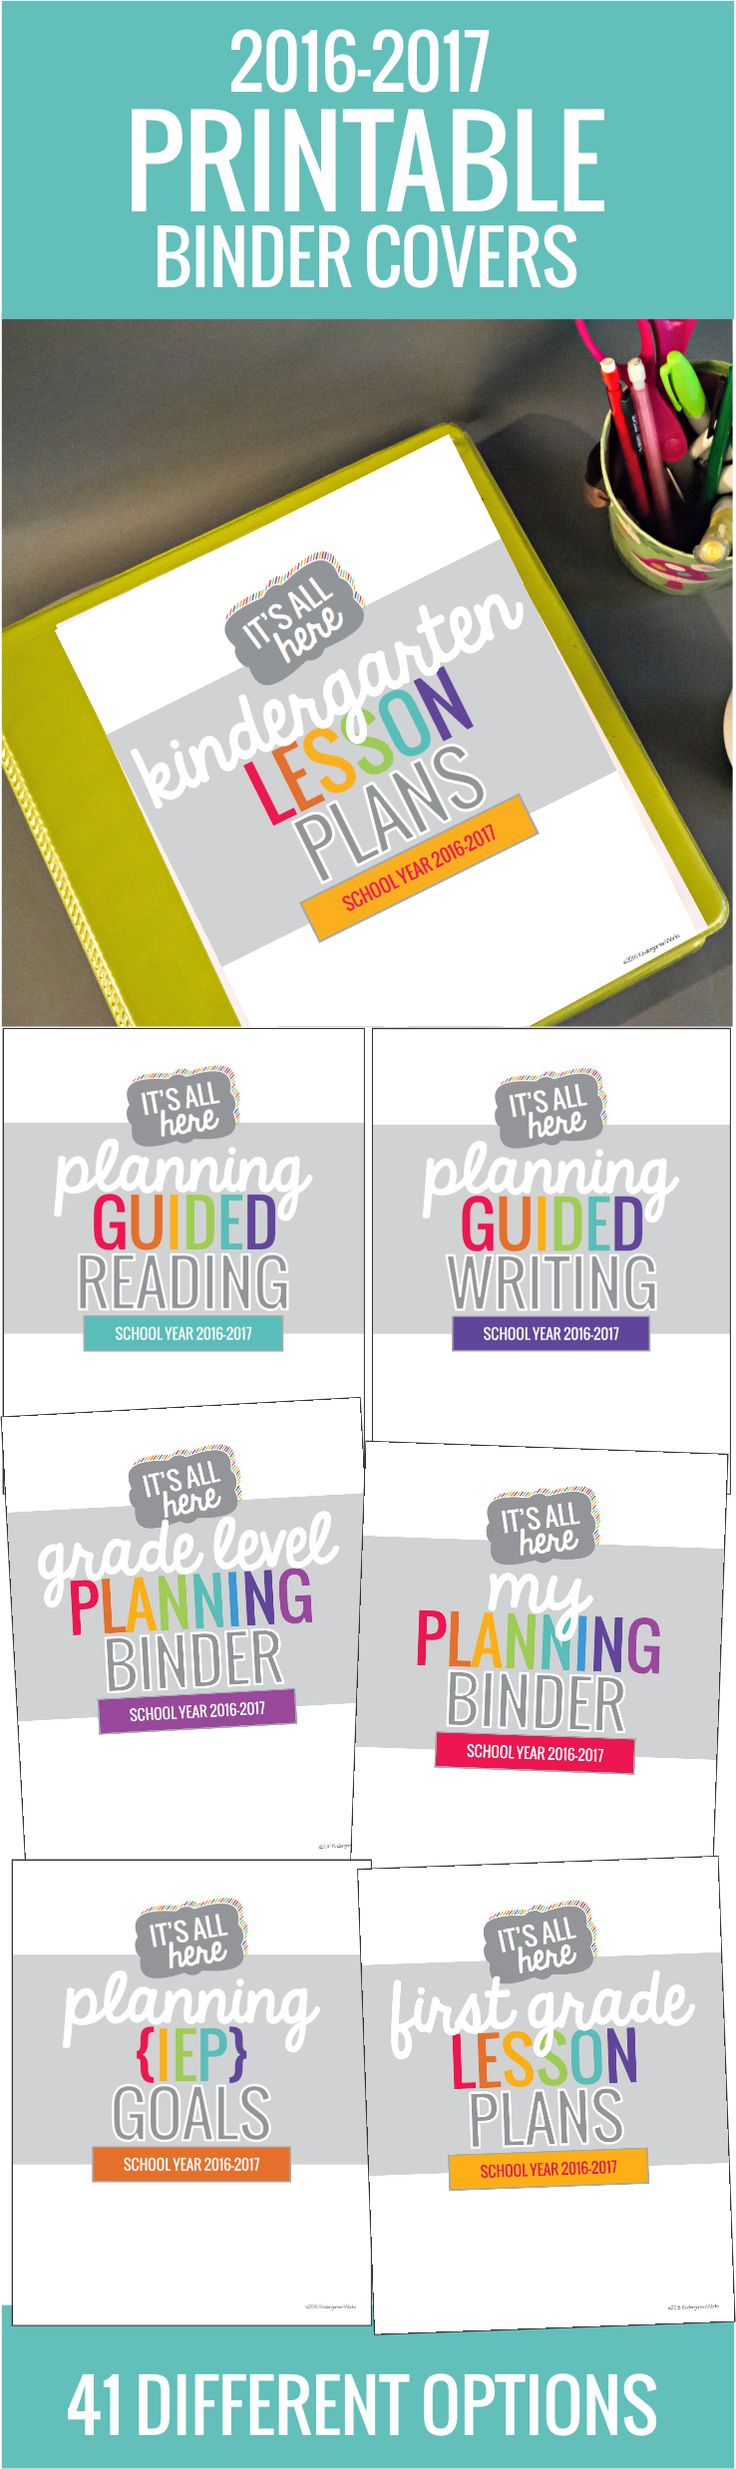 Cute teacher planning binder covers - I love all the options